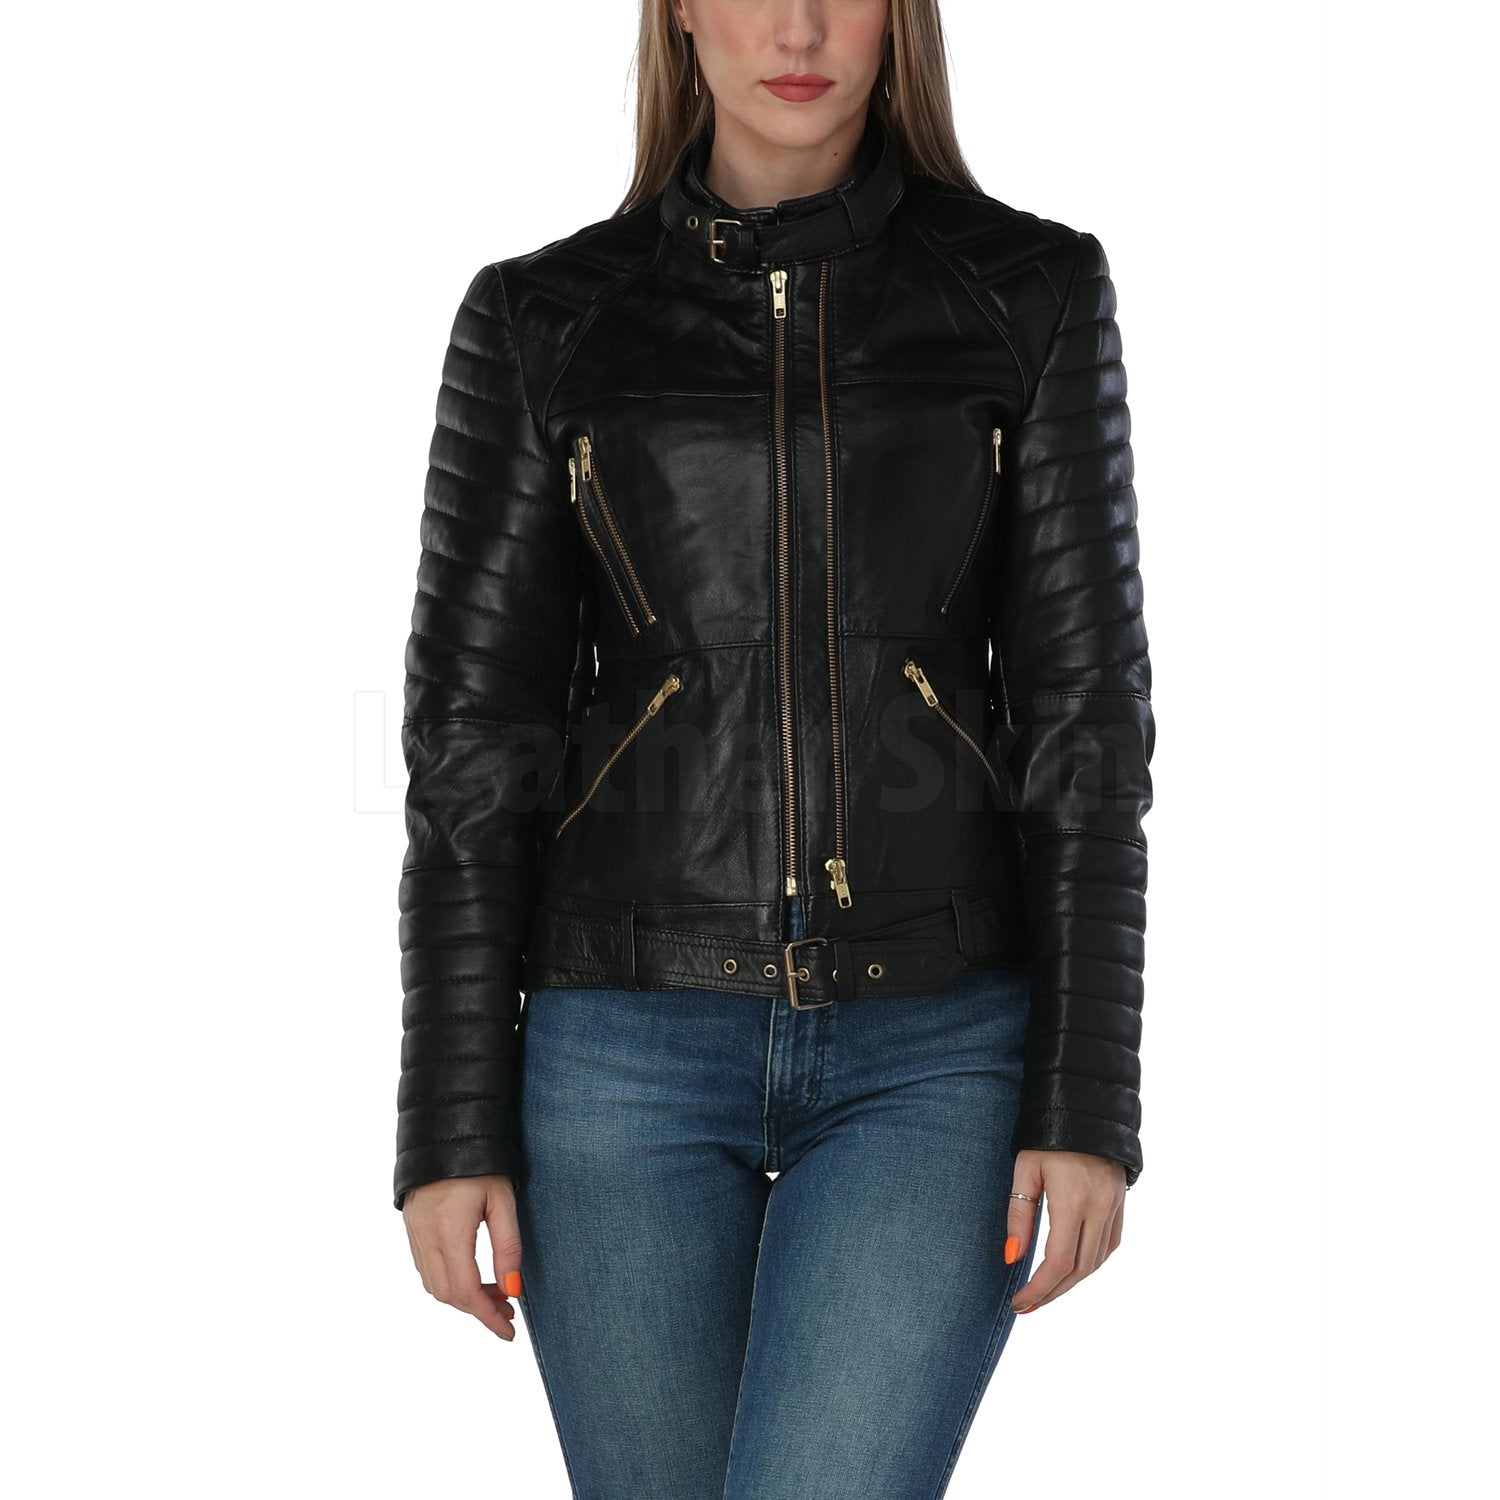 Katherine Black Belted Leather Jacket